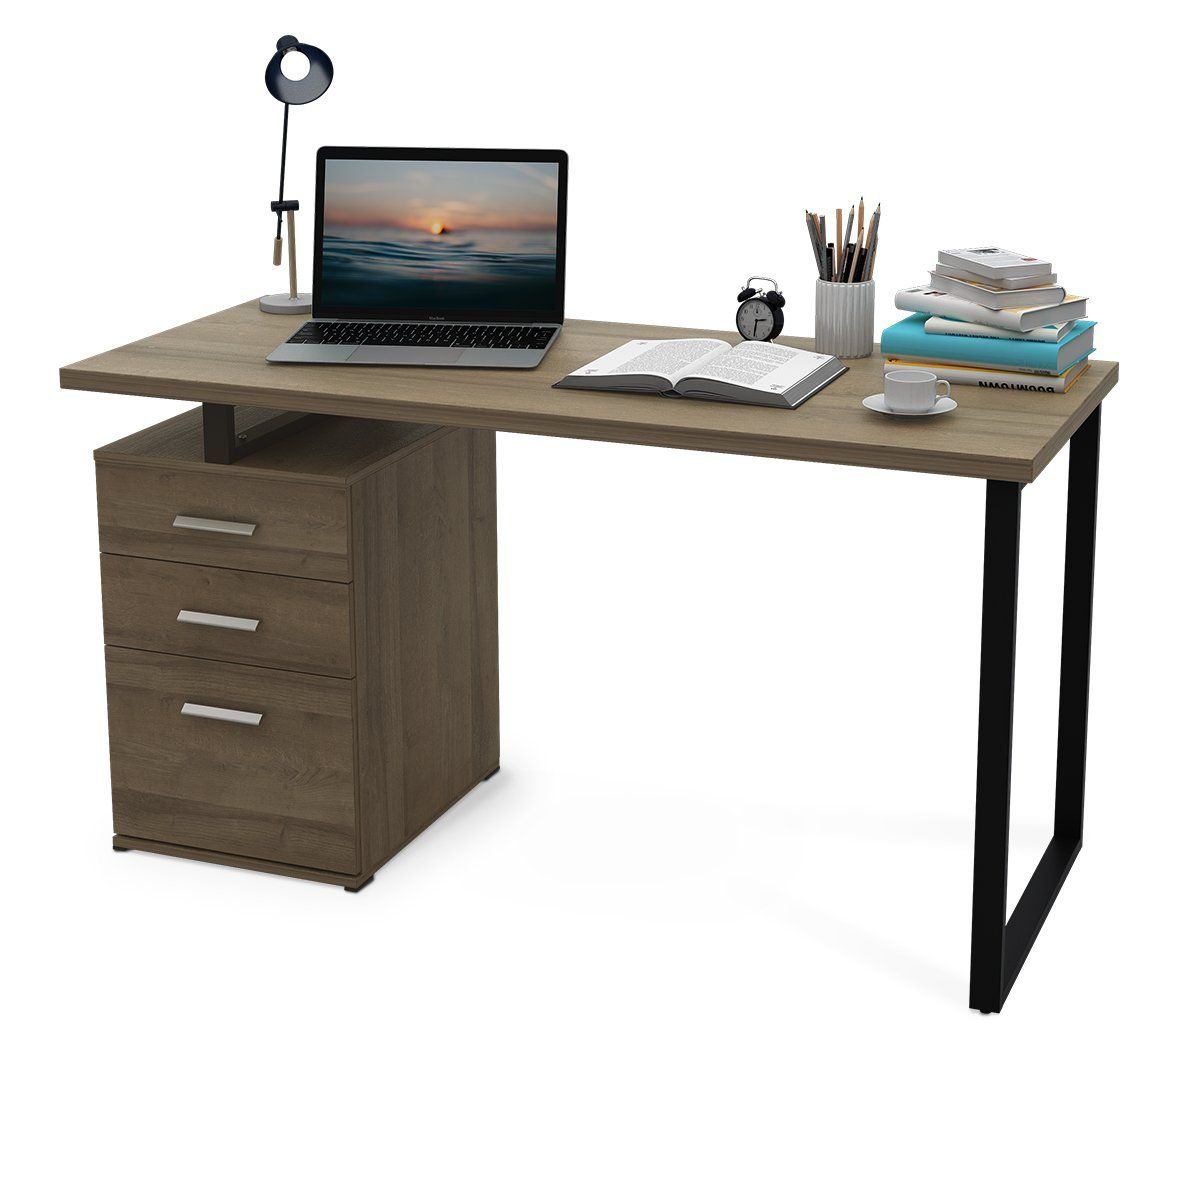 office desk with filing cabinet. DEVAISE Modern Computer Desk, 55.1\ Office Desk With Filing Cabinet